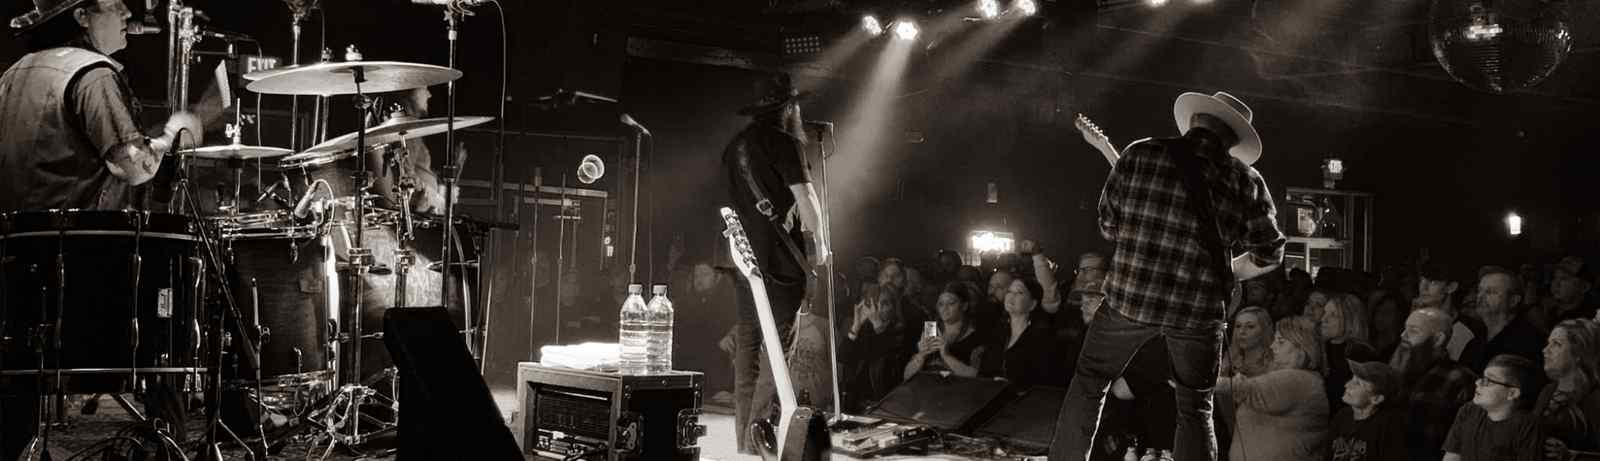 Live Review: The Steel Woods in Greensboro, 03/01/2019